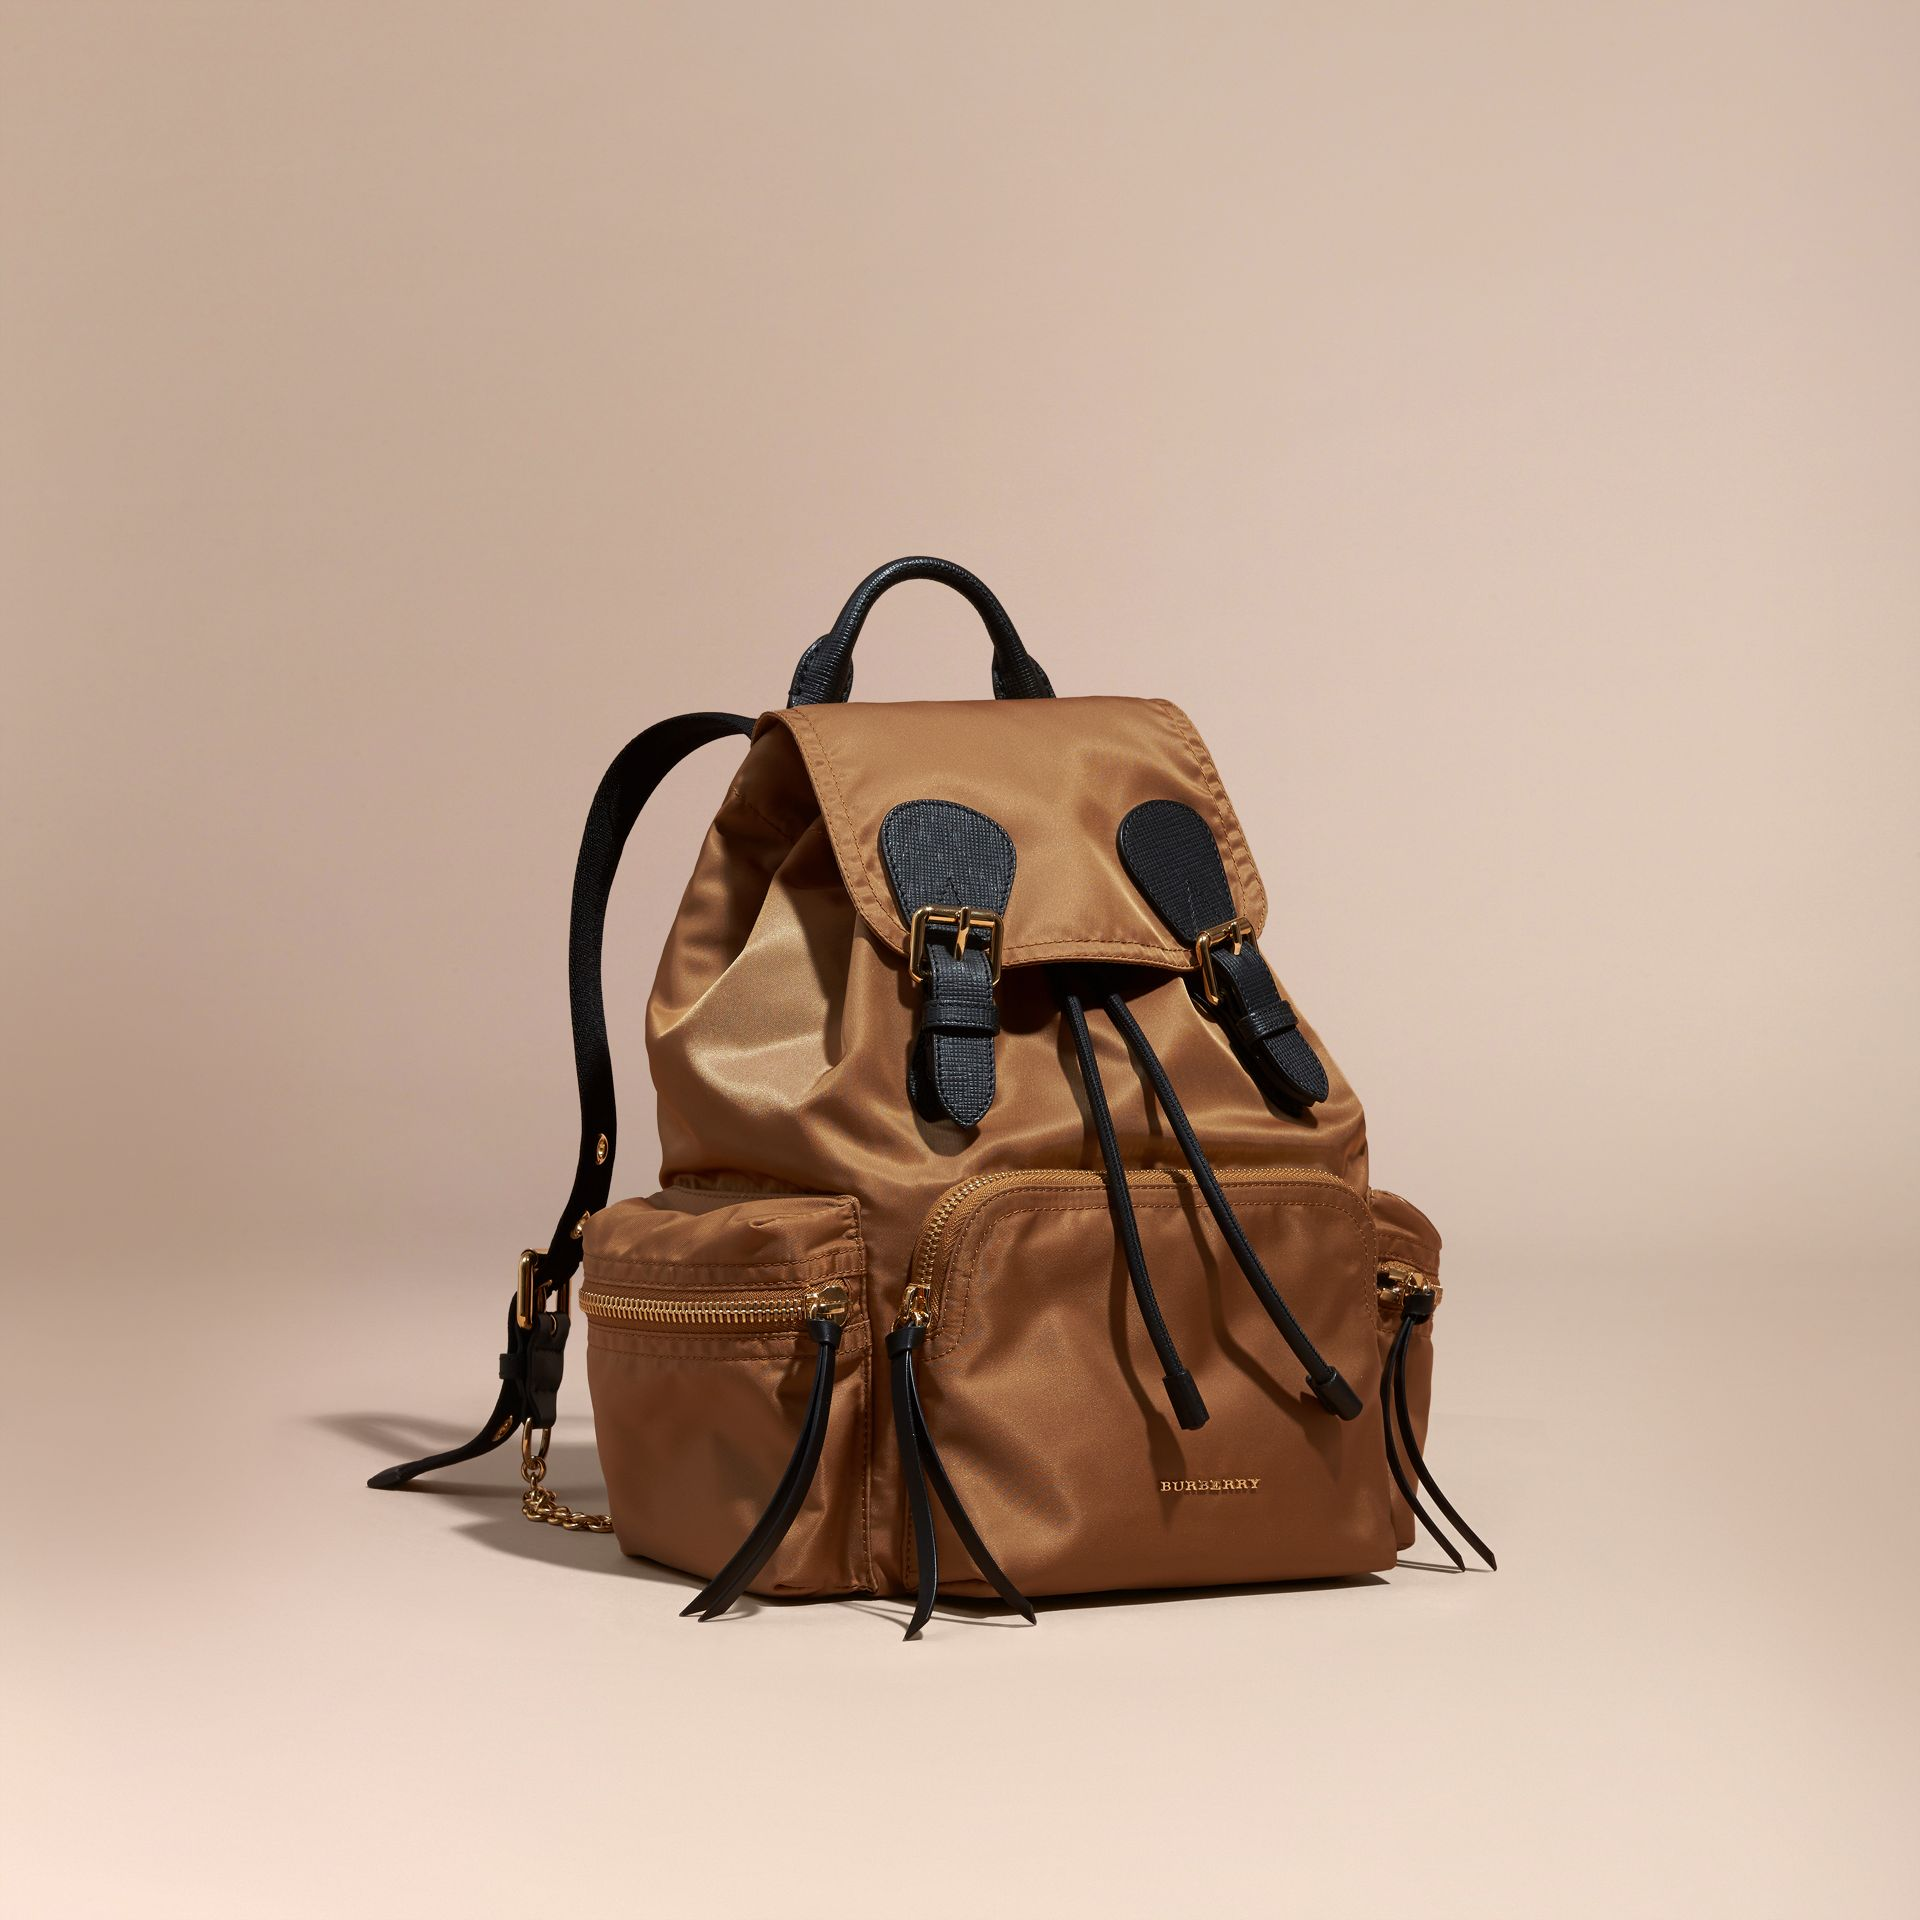 Sac The Rucksack medium en nylon technique et cuir (Lin Clair) - Femme | Burberry - photo de la galerie 1